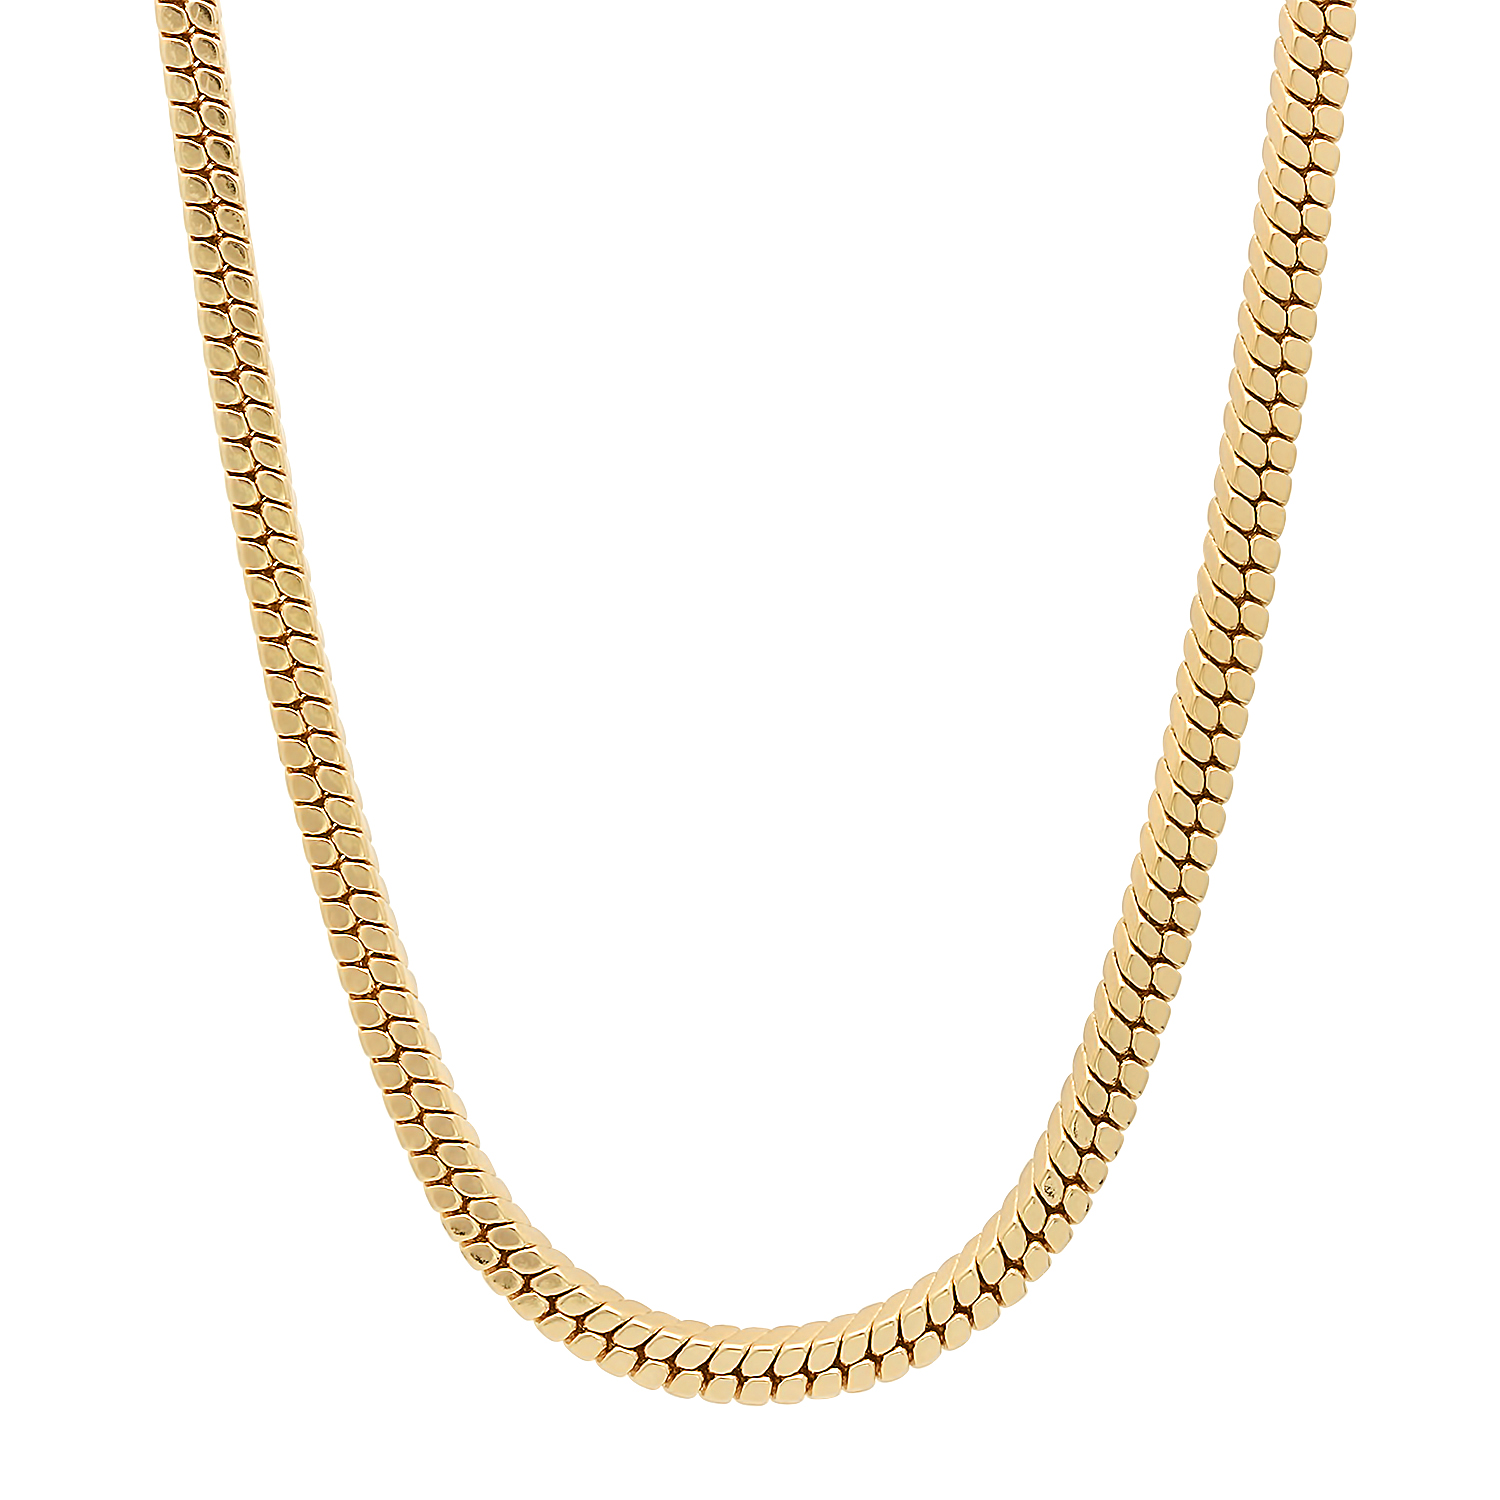 The Bling Factory Men's 36 Inch 4 mm 14k Yellow Gold Plated Serpent Snake Long Hip Hop Neck Chain